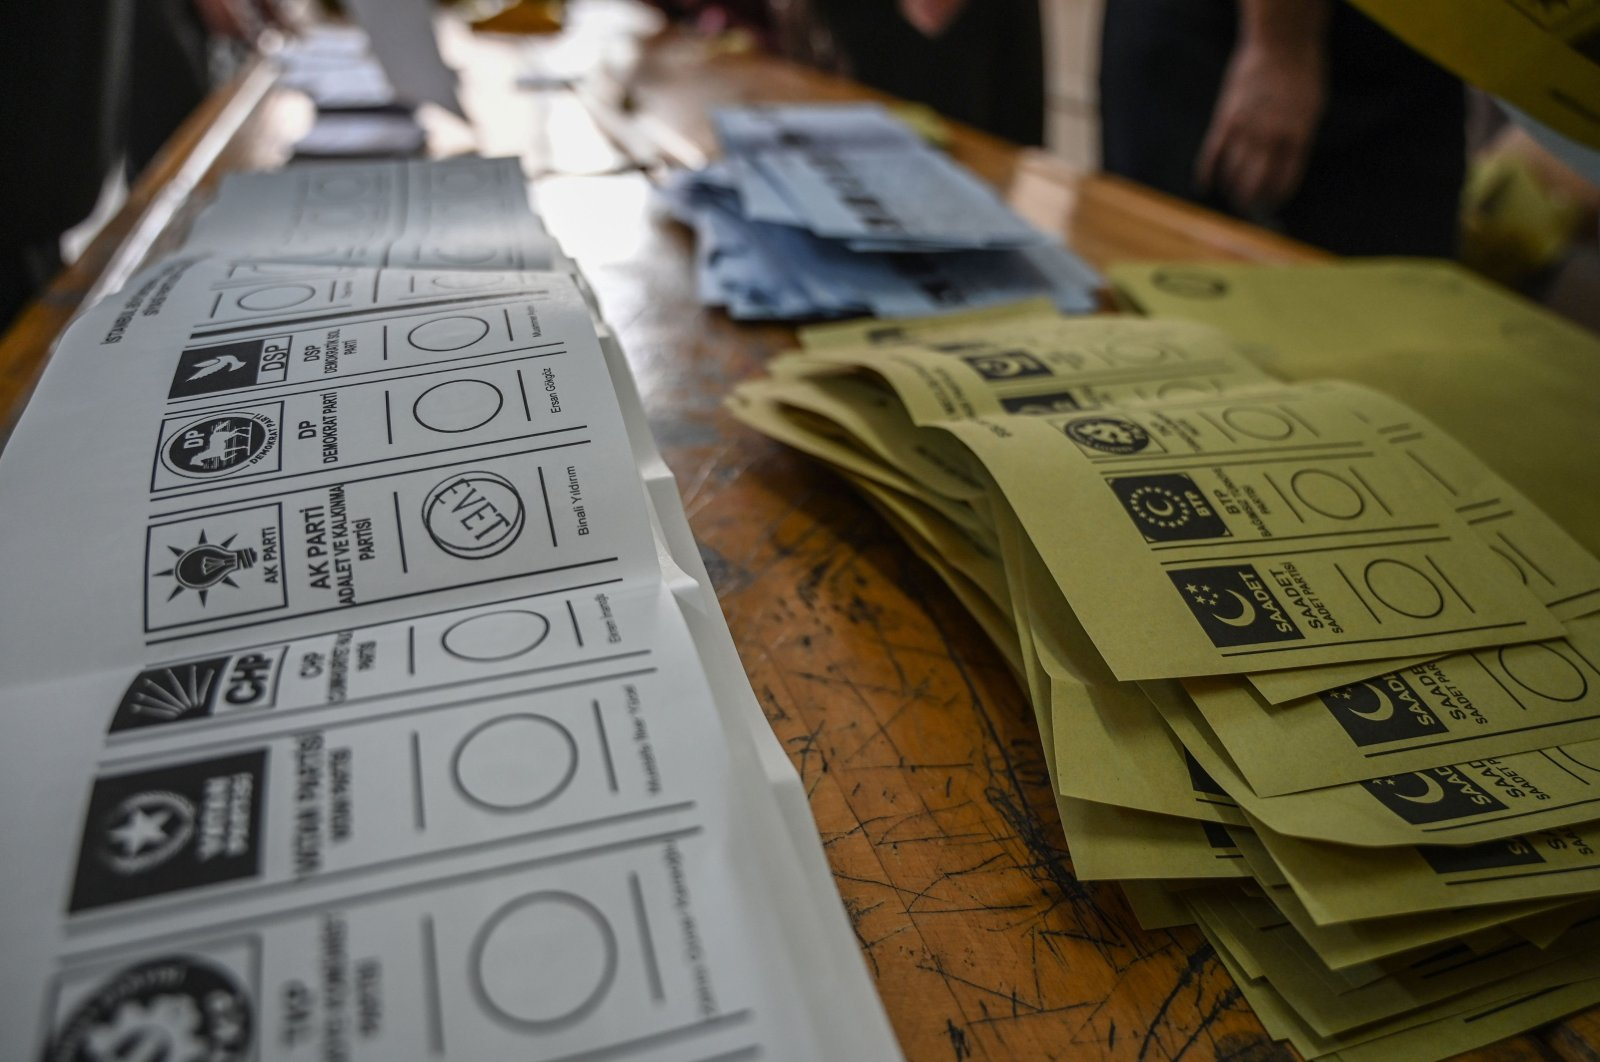 Electoral officers prepare ballots to count at a polling station in Istanbul, Turkey, March 31, 2019. (AFP Photo)